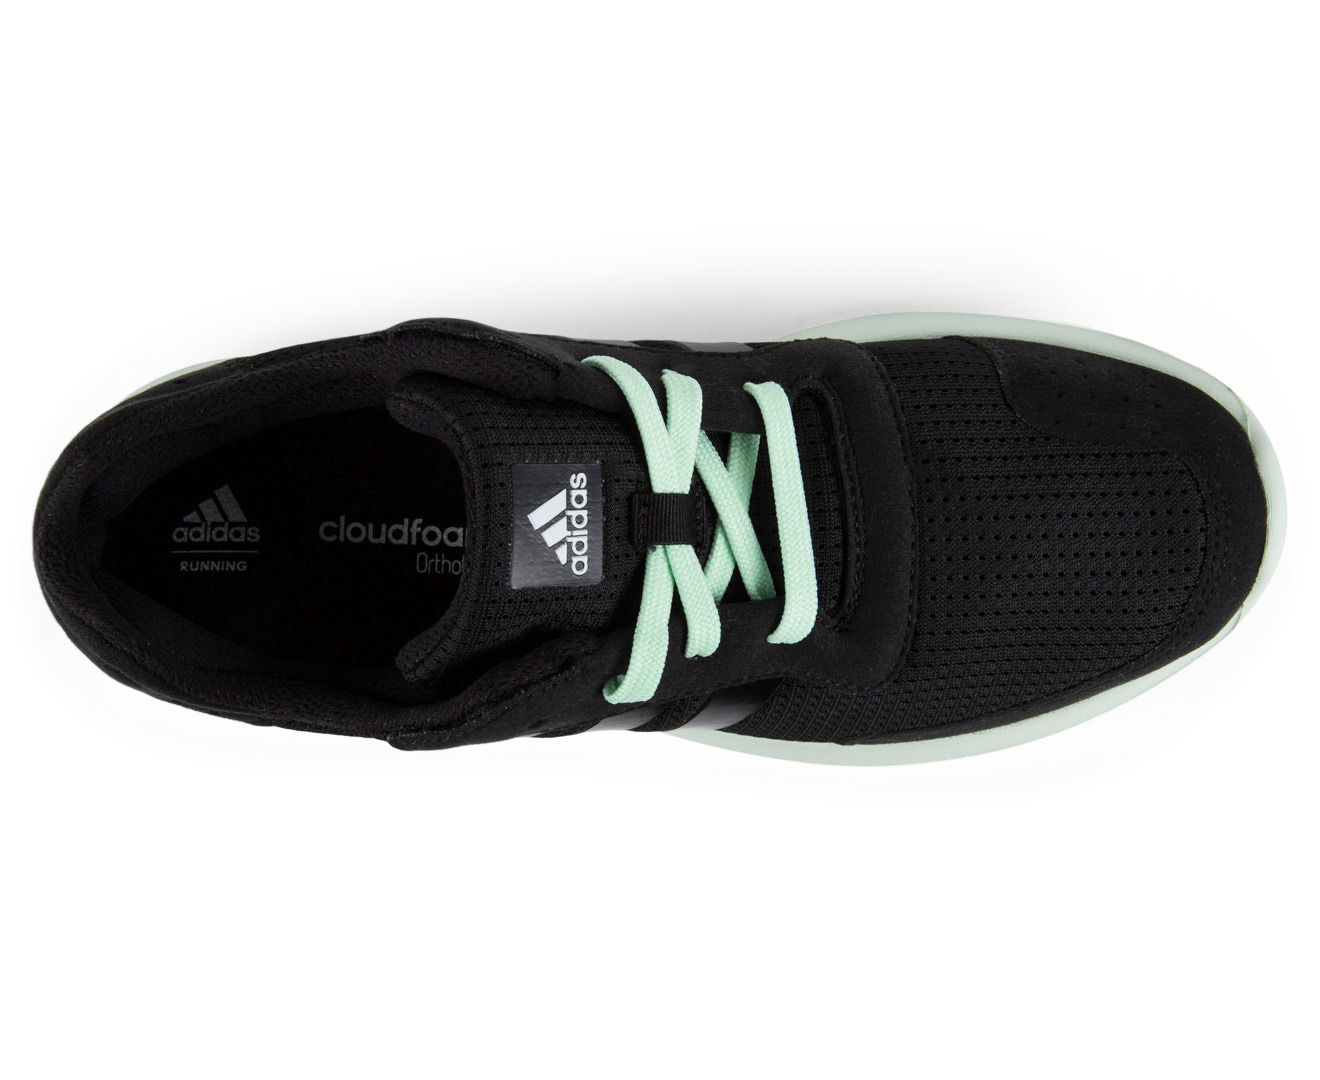 Adidas Women's Element Refresh Running Shoe - Black/Mint | Great daily  deals at Australia's favourite superstore | Catch.com.au